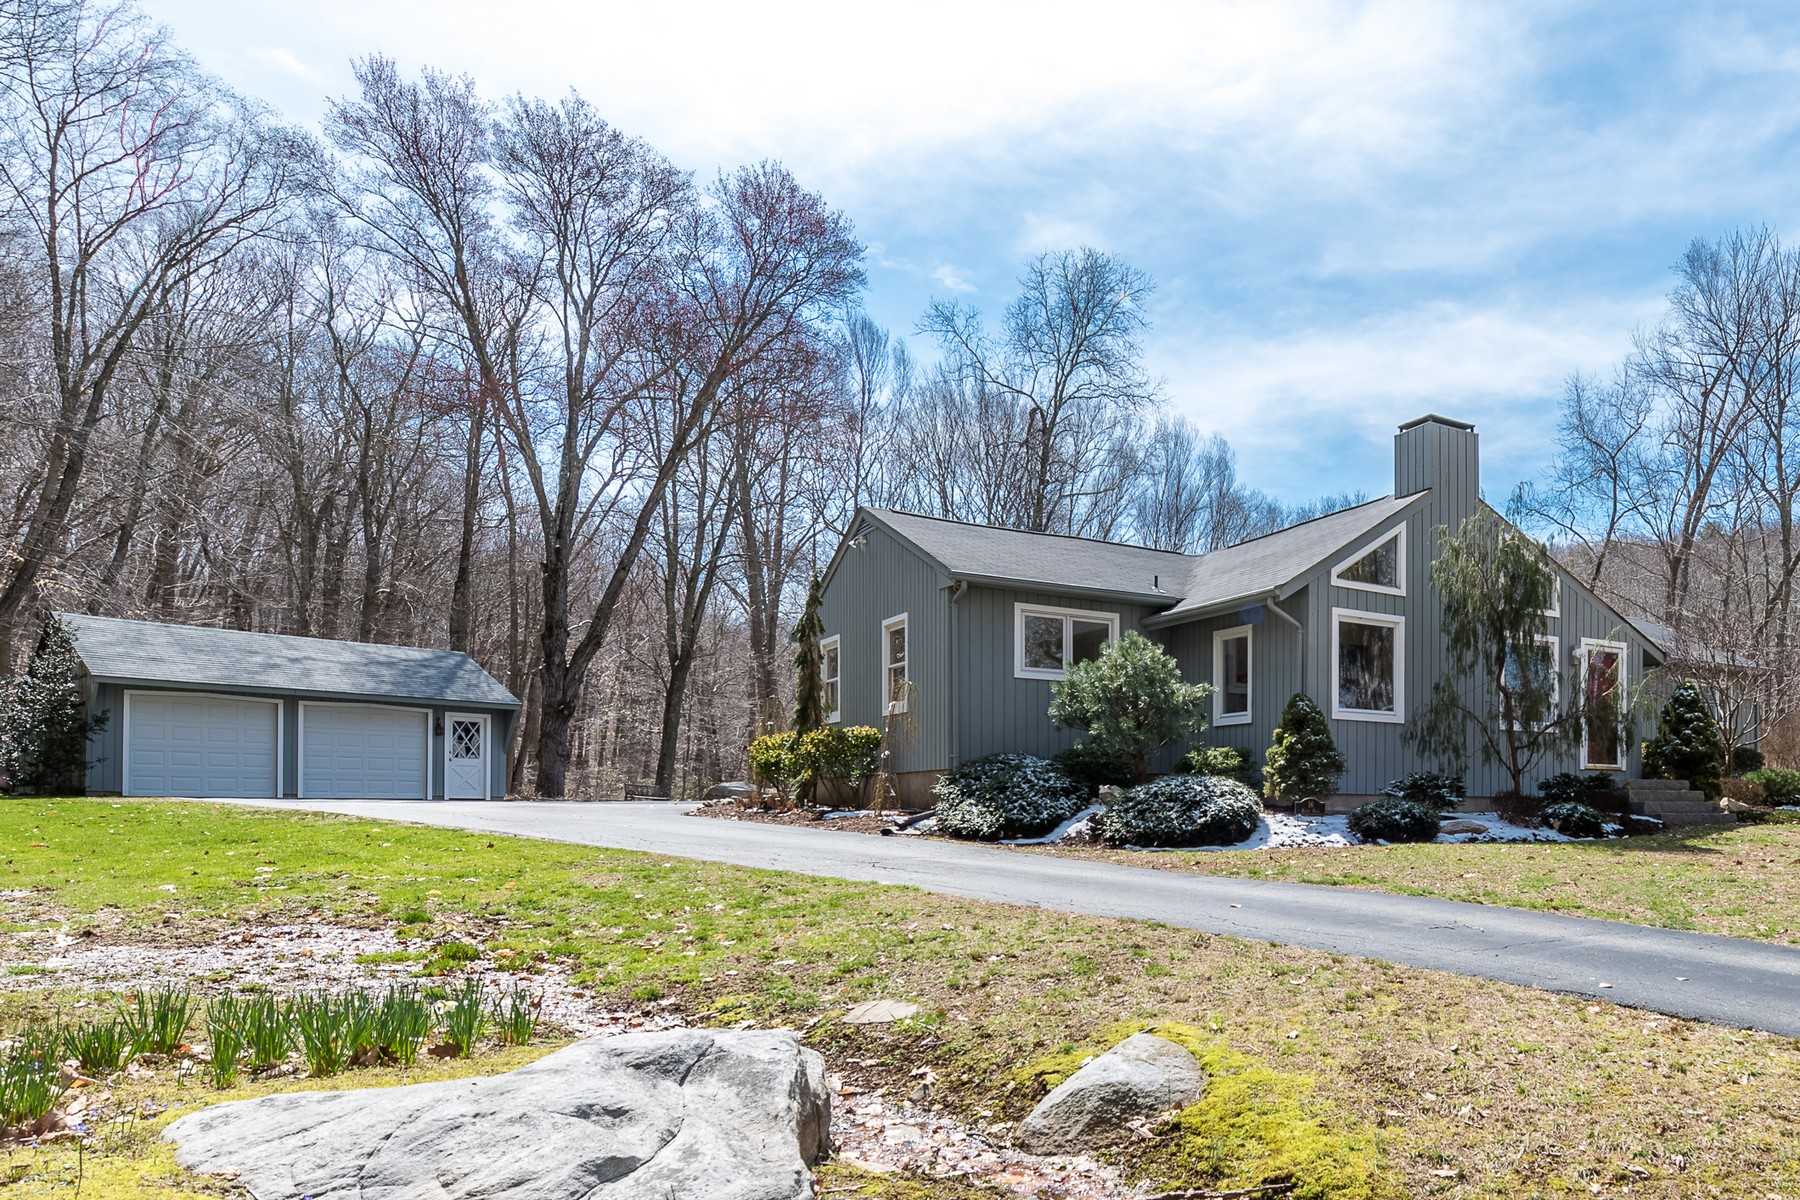 Single Family Home for Sale at Park-Like Setting in Desirable River Road 16 River Rd Deep River, Connecticut, 06417 United States